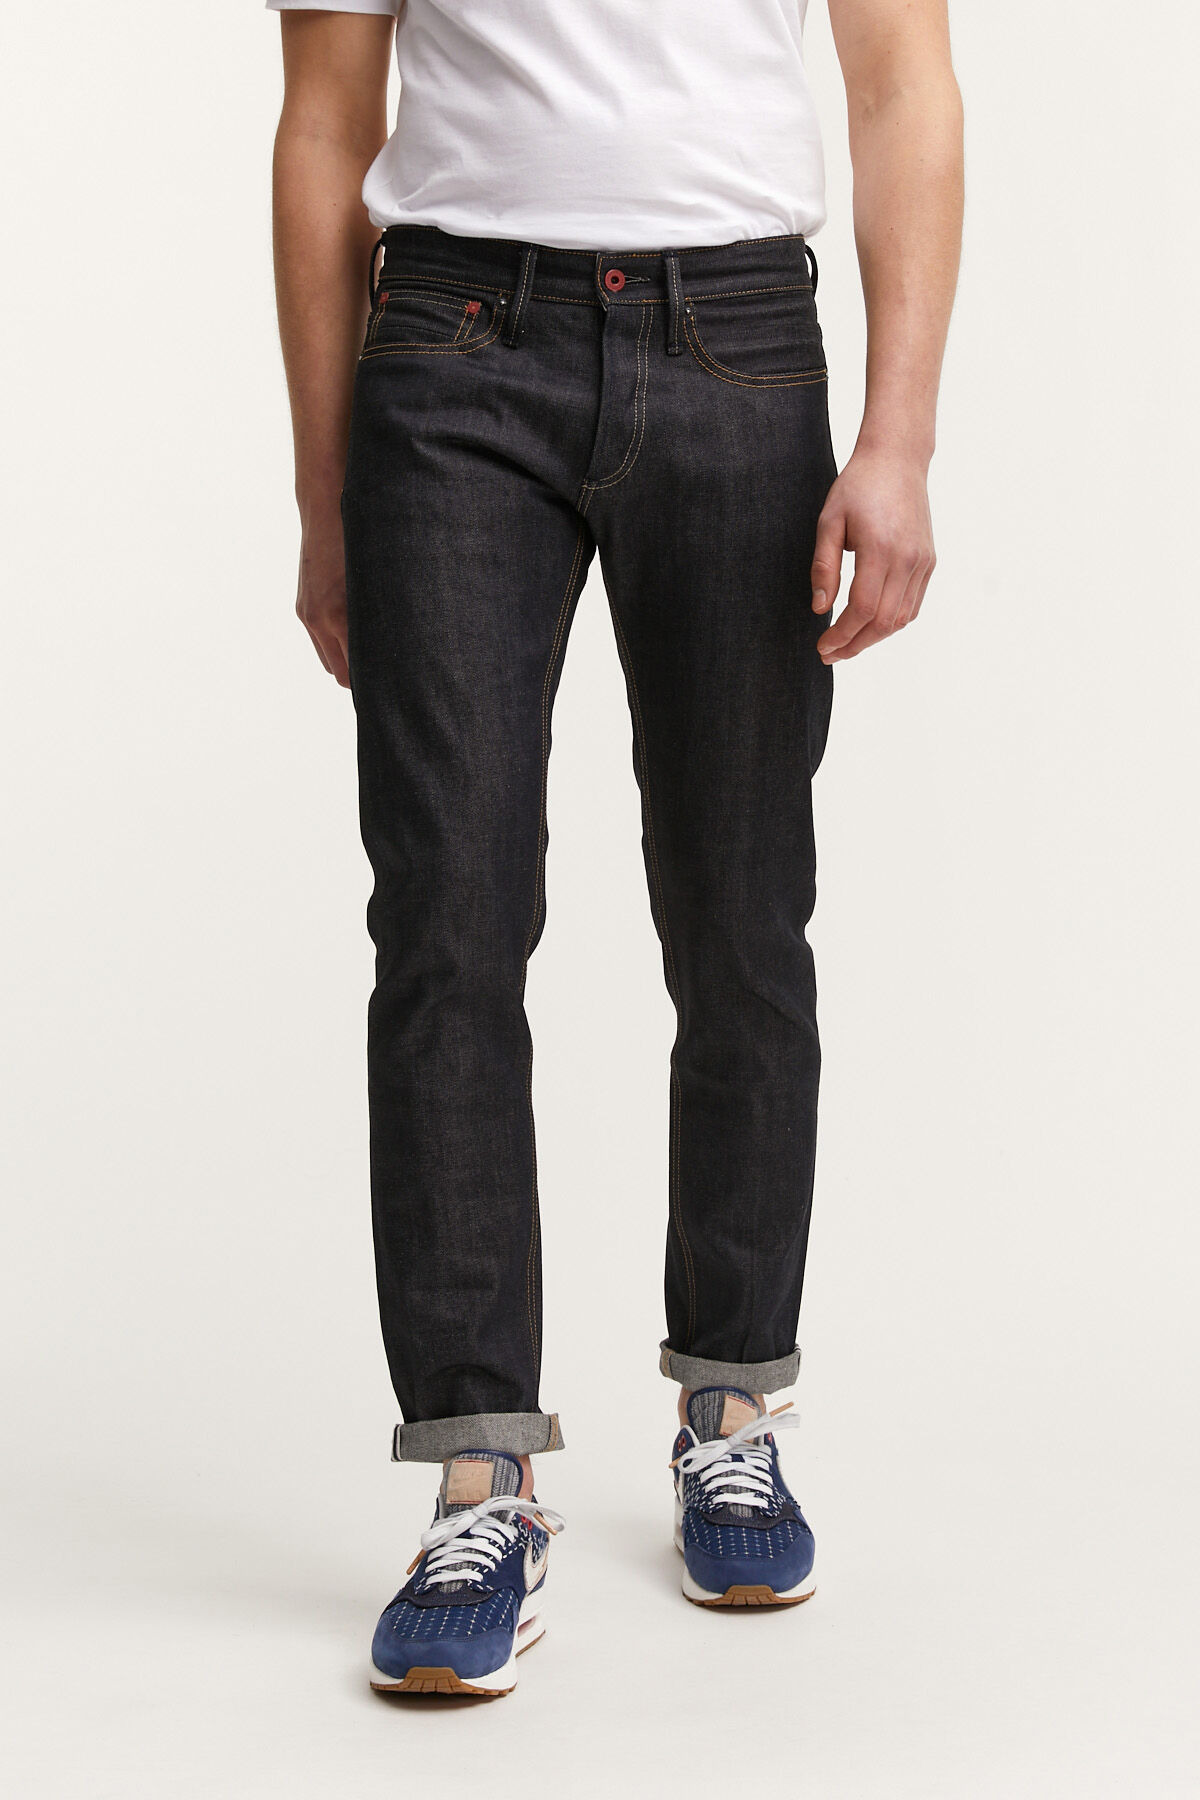 RAZOR Made in Japan, Virgin Selvedge Denim - Slim Fit